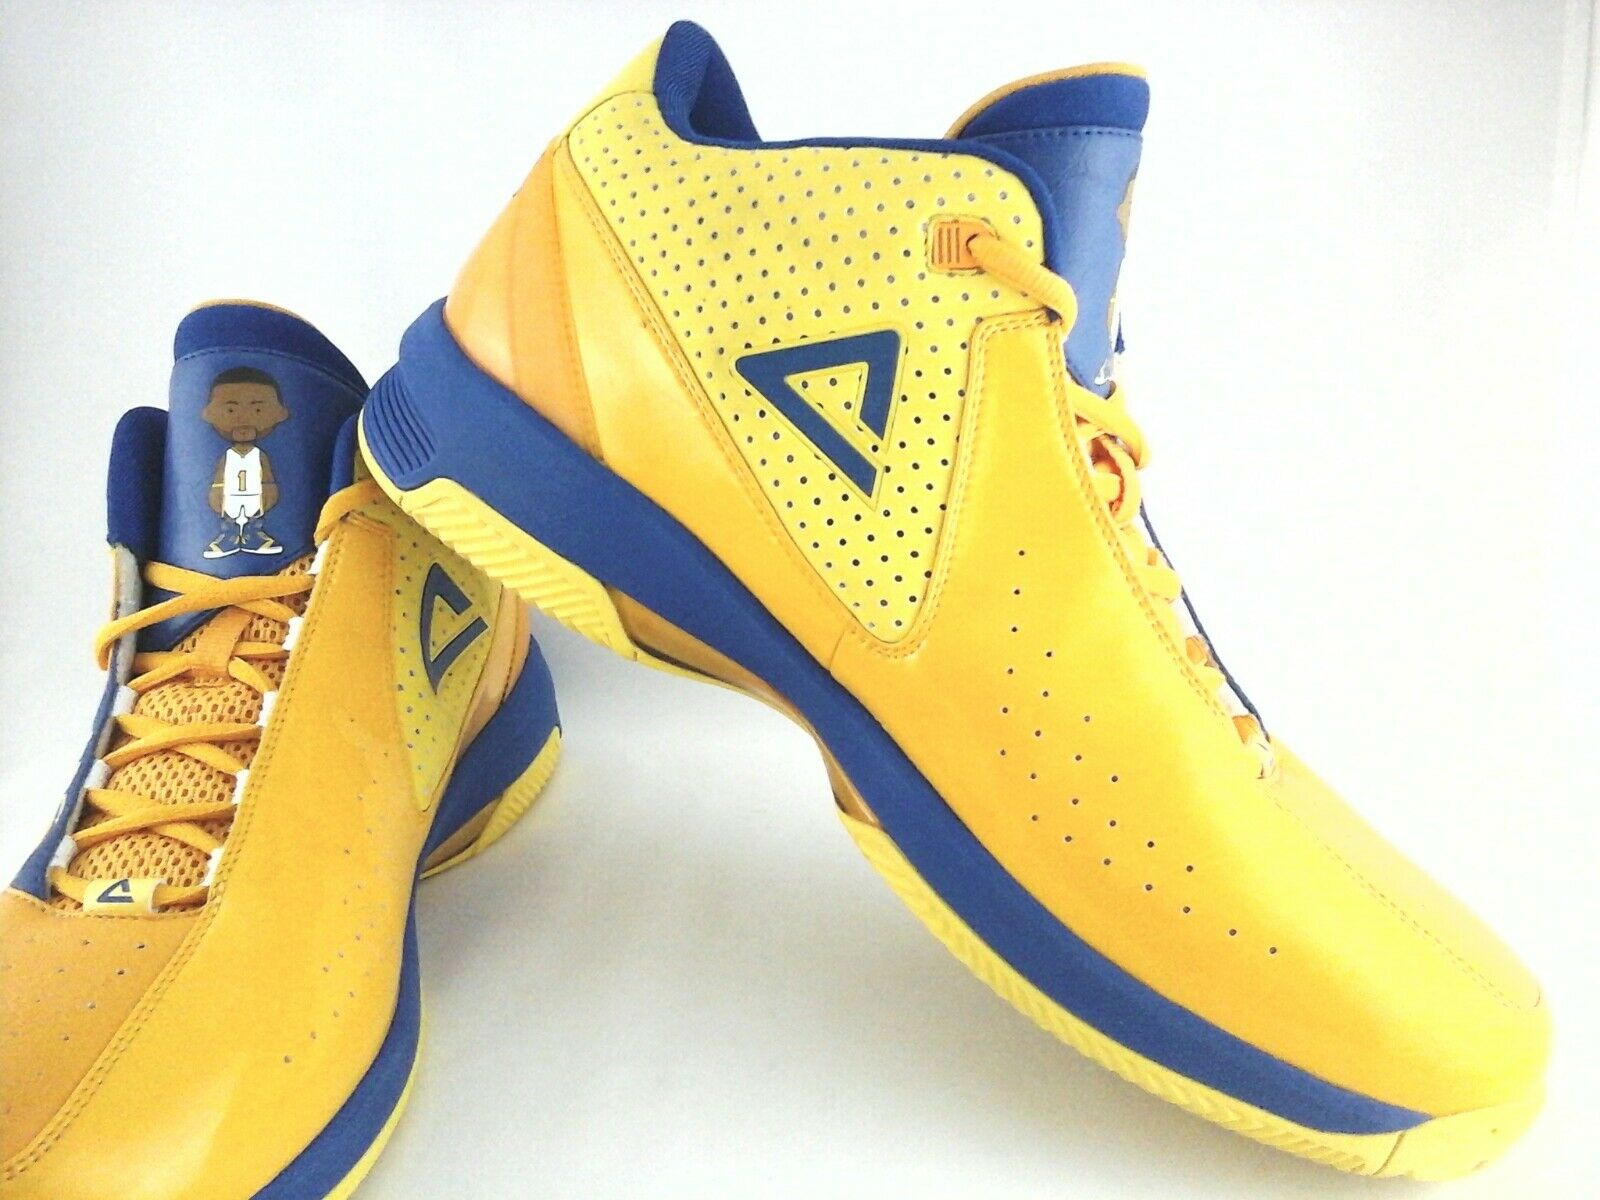 Peak DW hommes Basketball NBA Sneakers Chaussures Lakers Colors Yellow bleu Ultra Rare